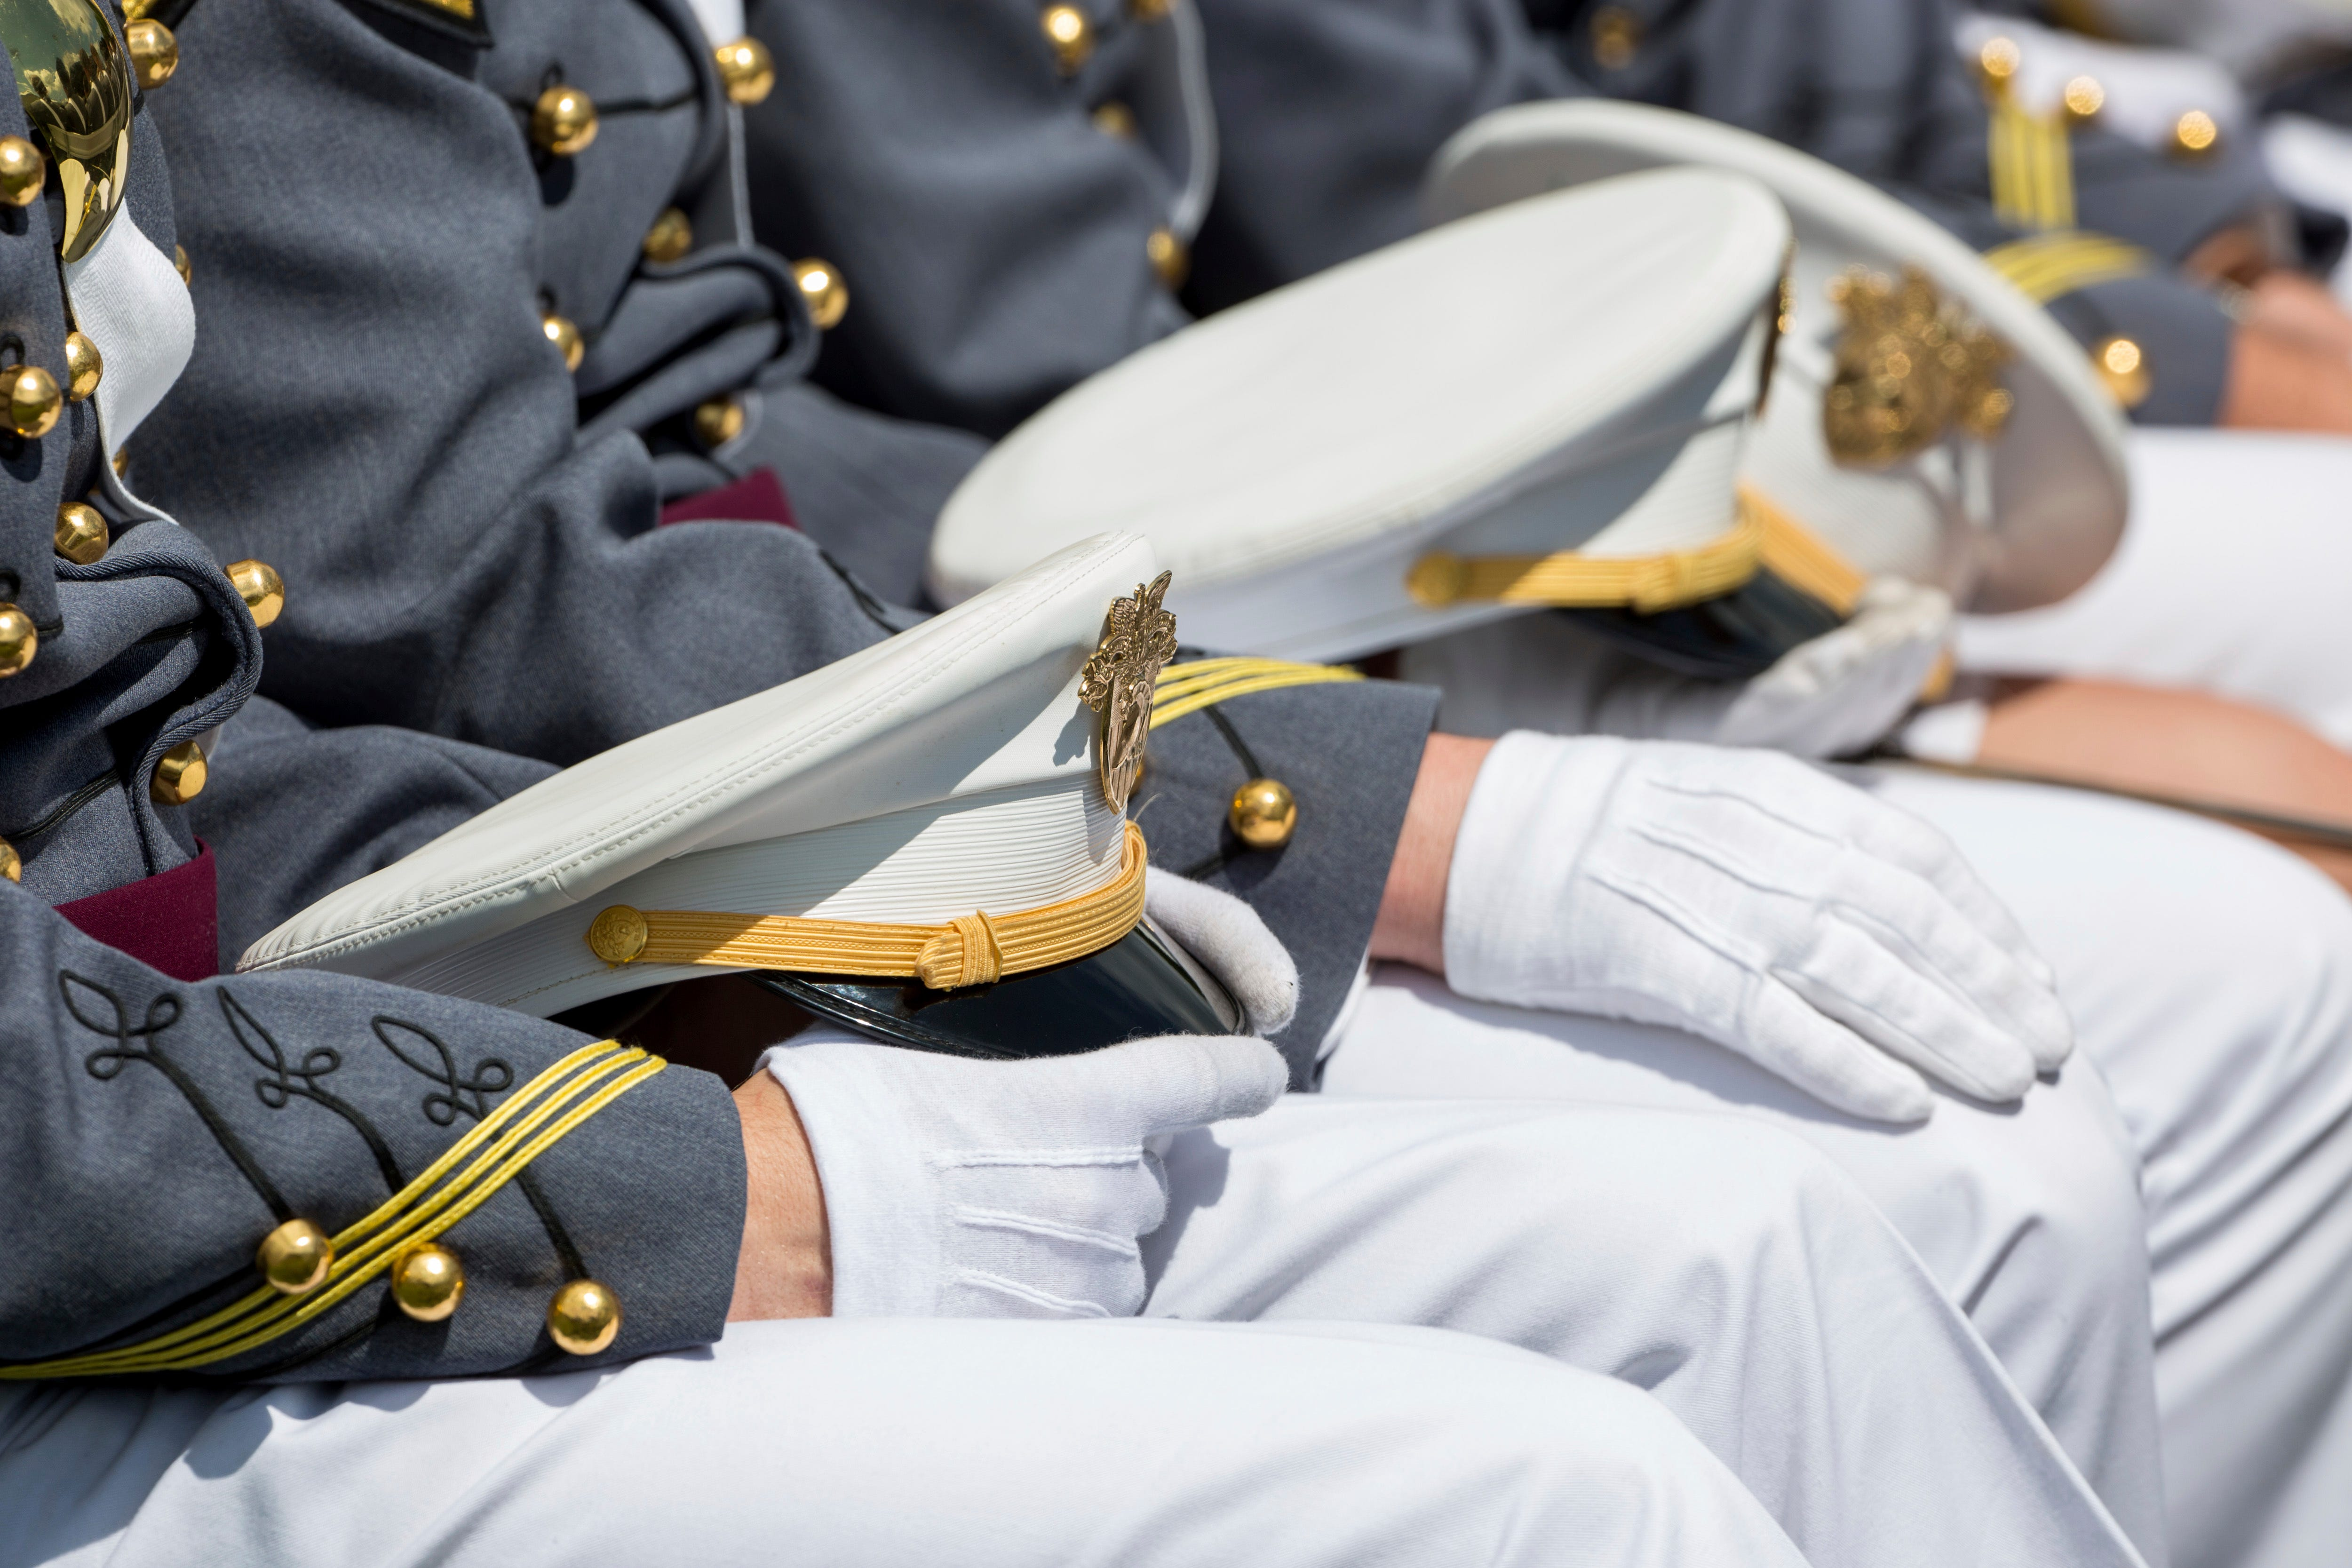 West Point cadet returns after judges overturn conviction for raping classmate in sleeping bag